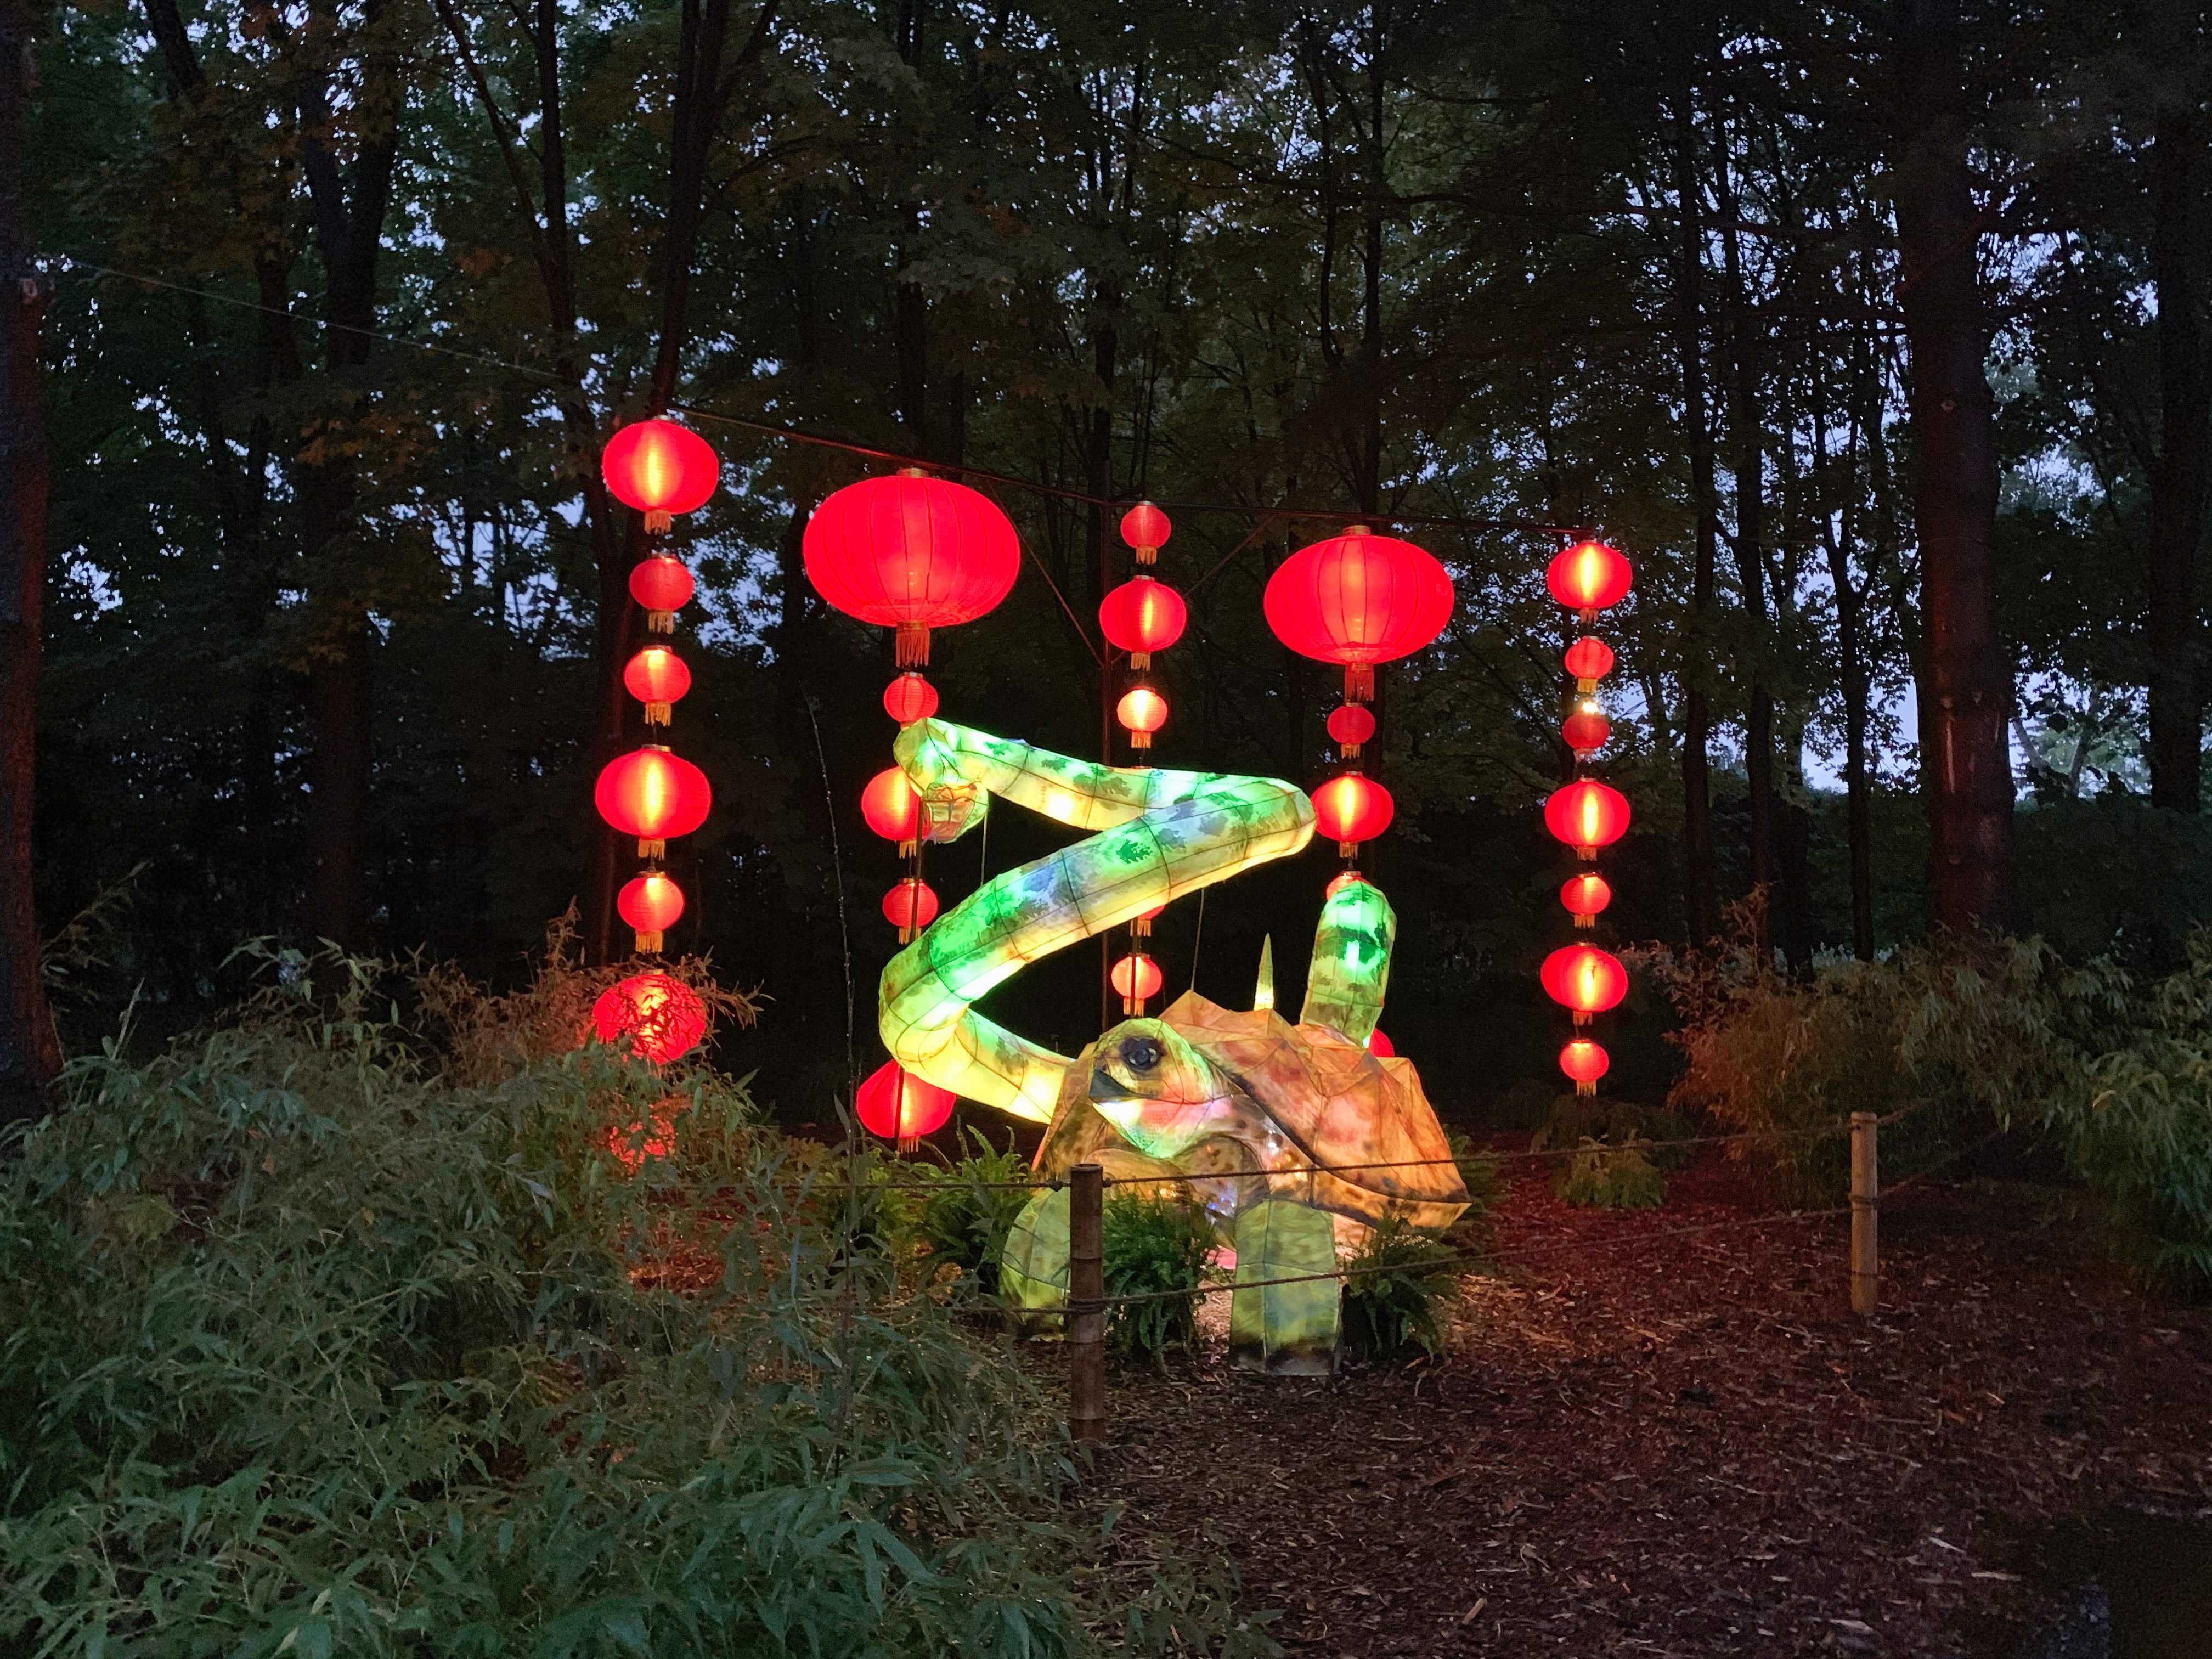 Montreal Must-See -Gardens of Light at the Botanical Garden